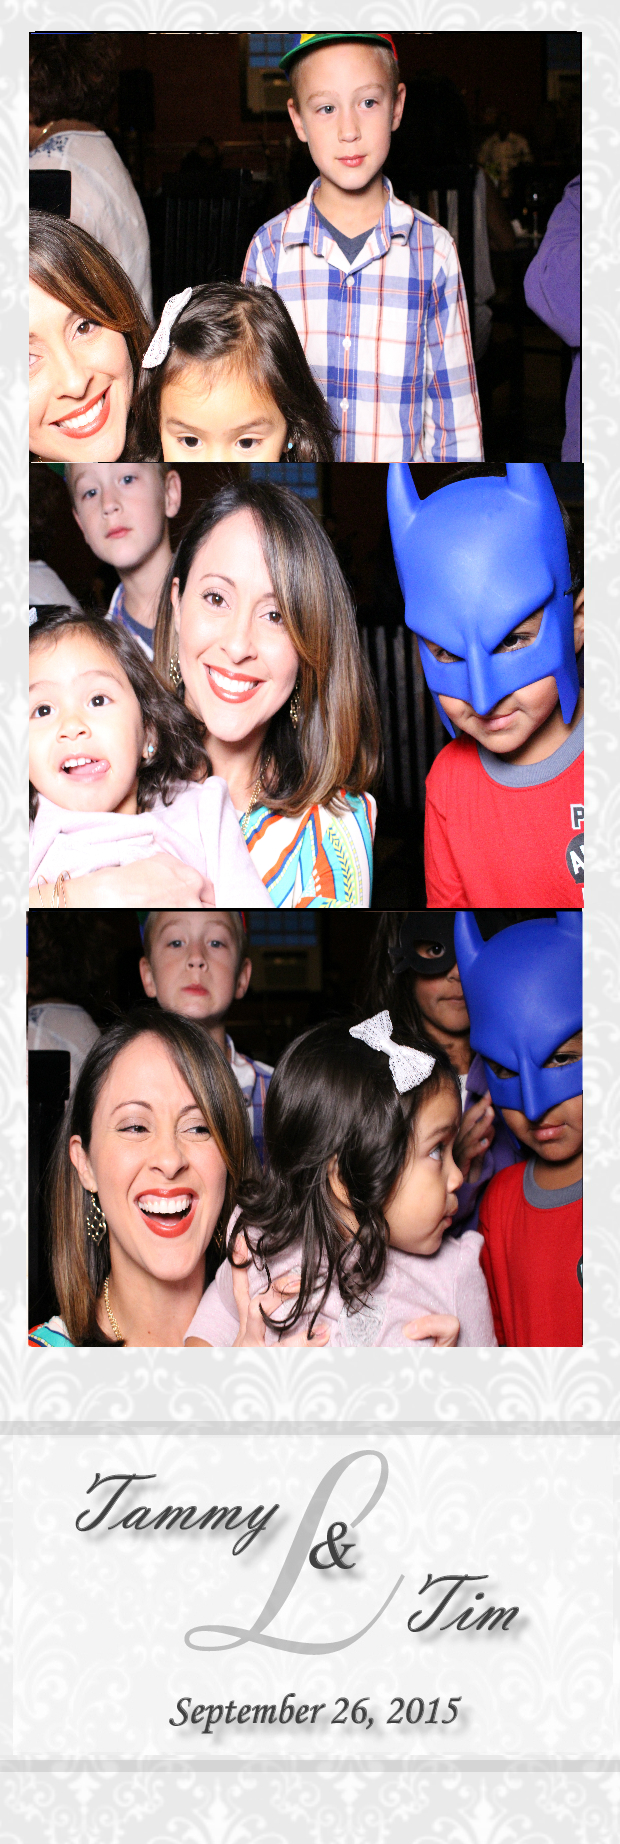 Guest House Events Photo Booth Strips T&T (3).jpg